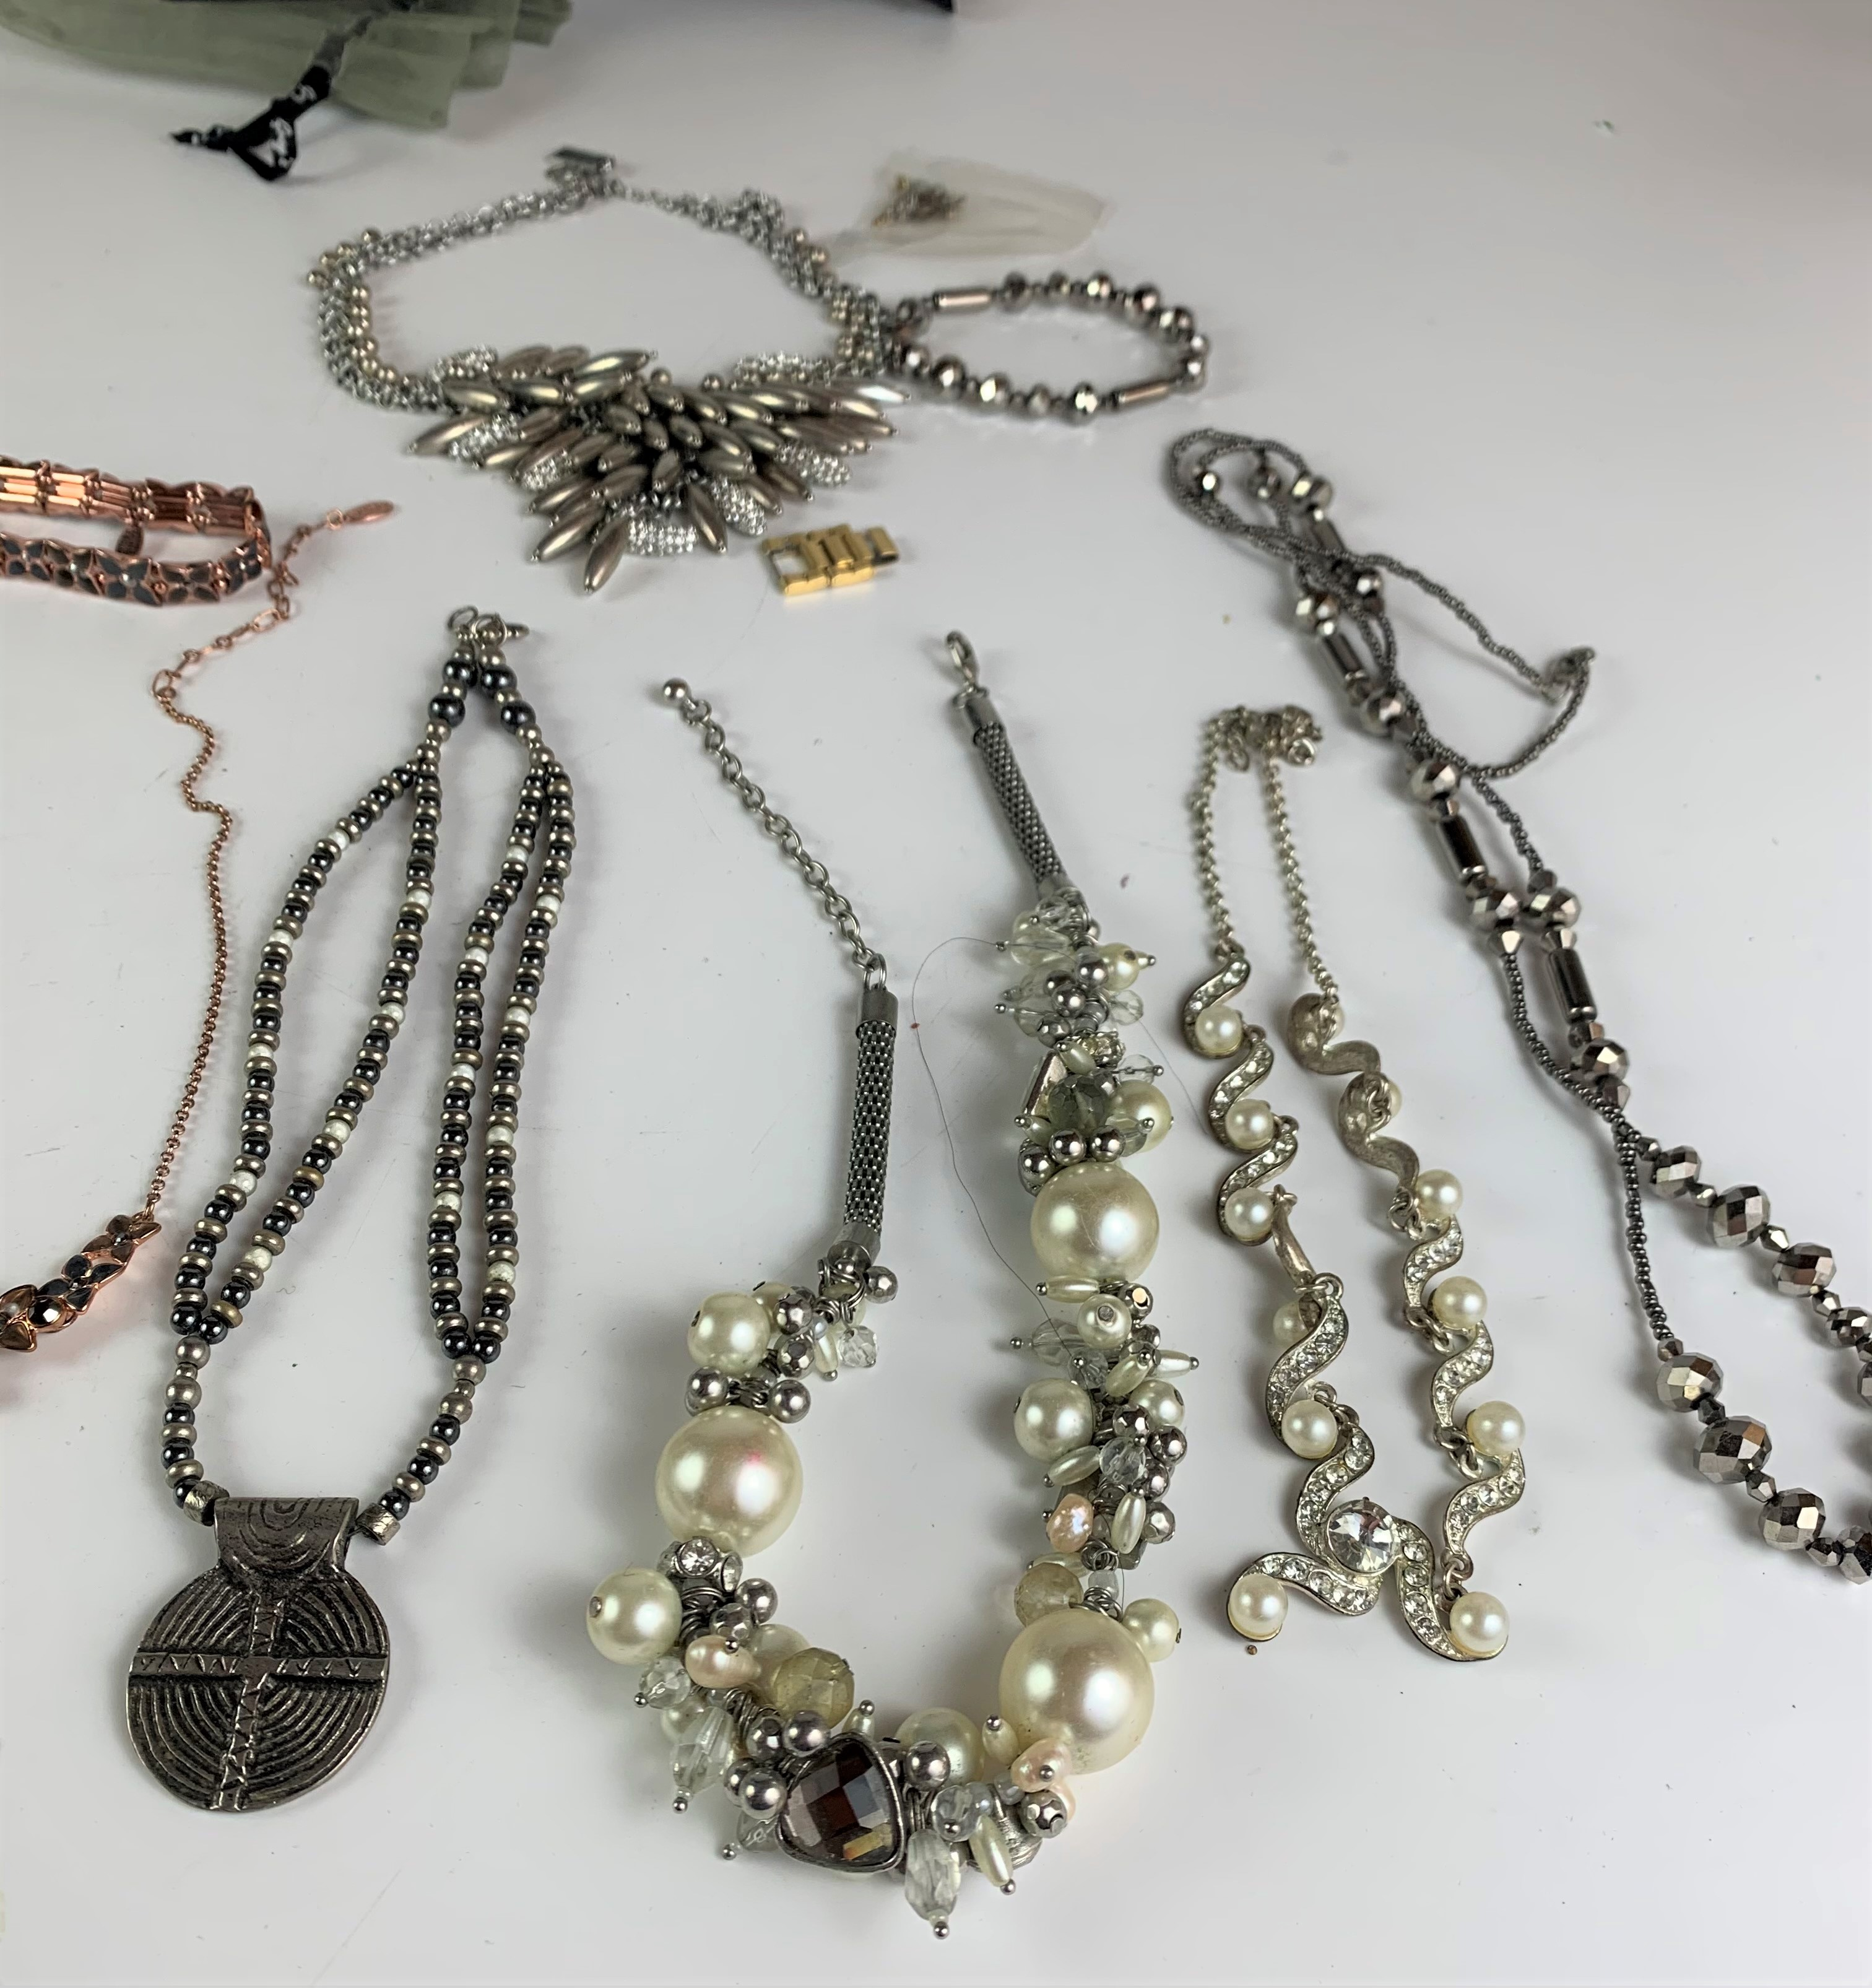 Large bag of assorted dress jewellery including necklaces, bracelets and rings - Image 5 of 6